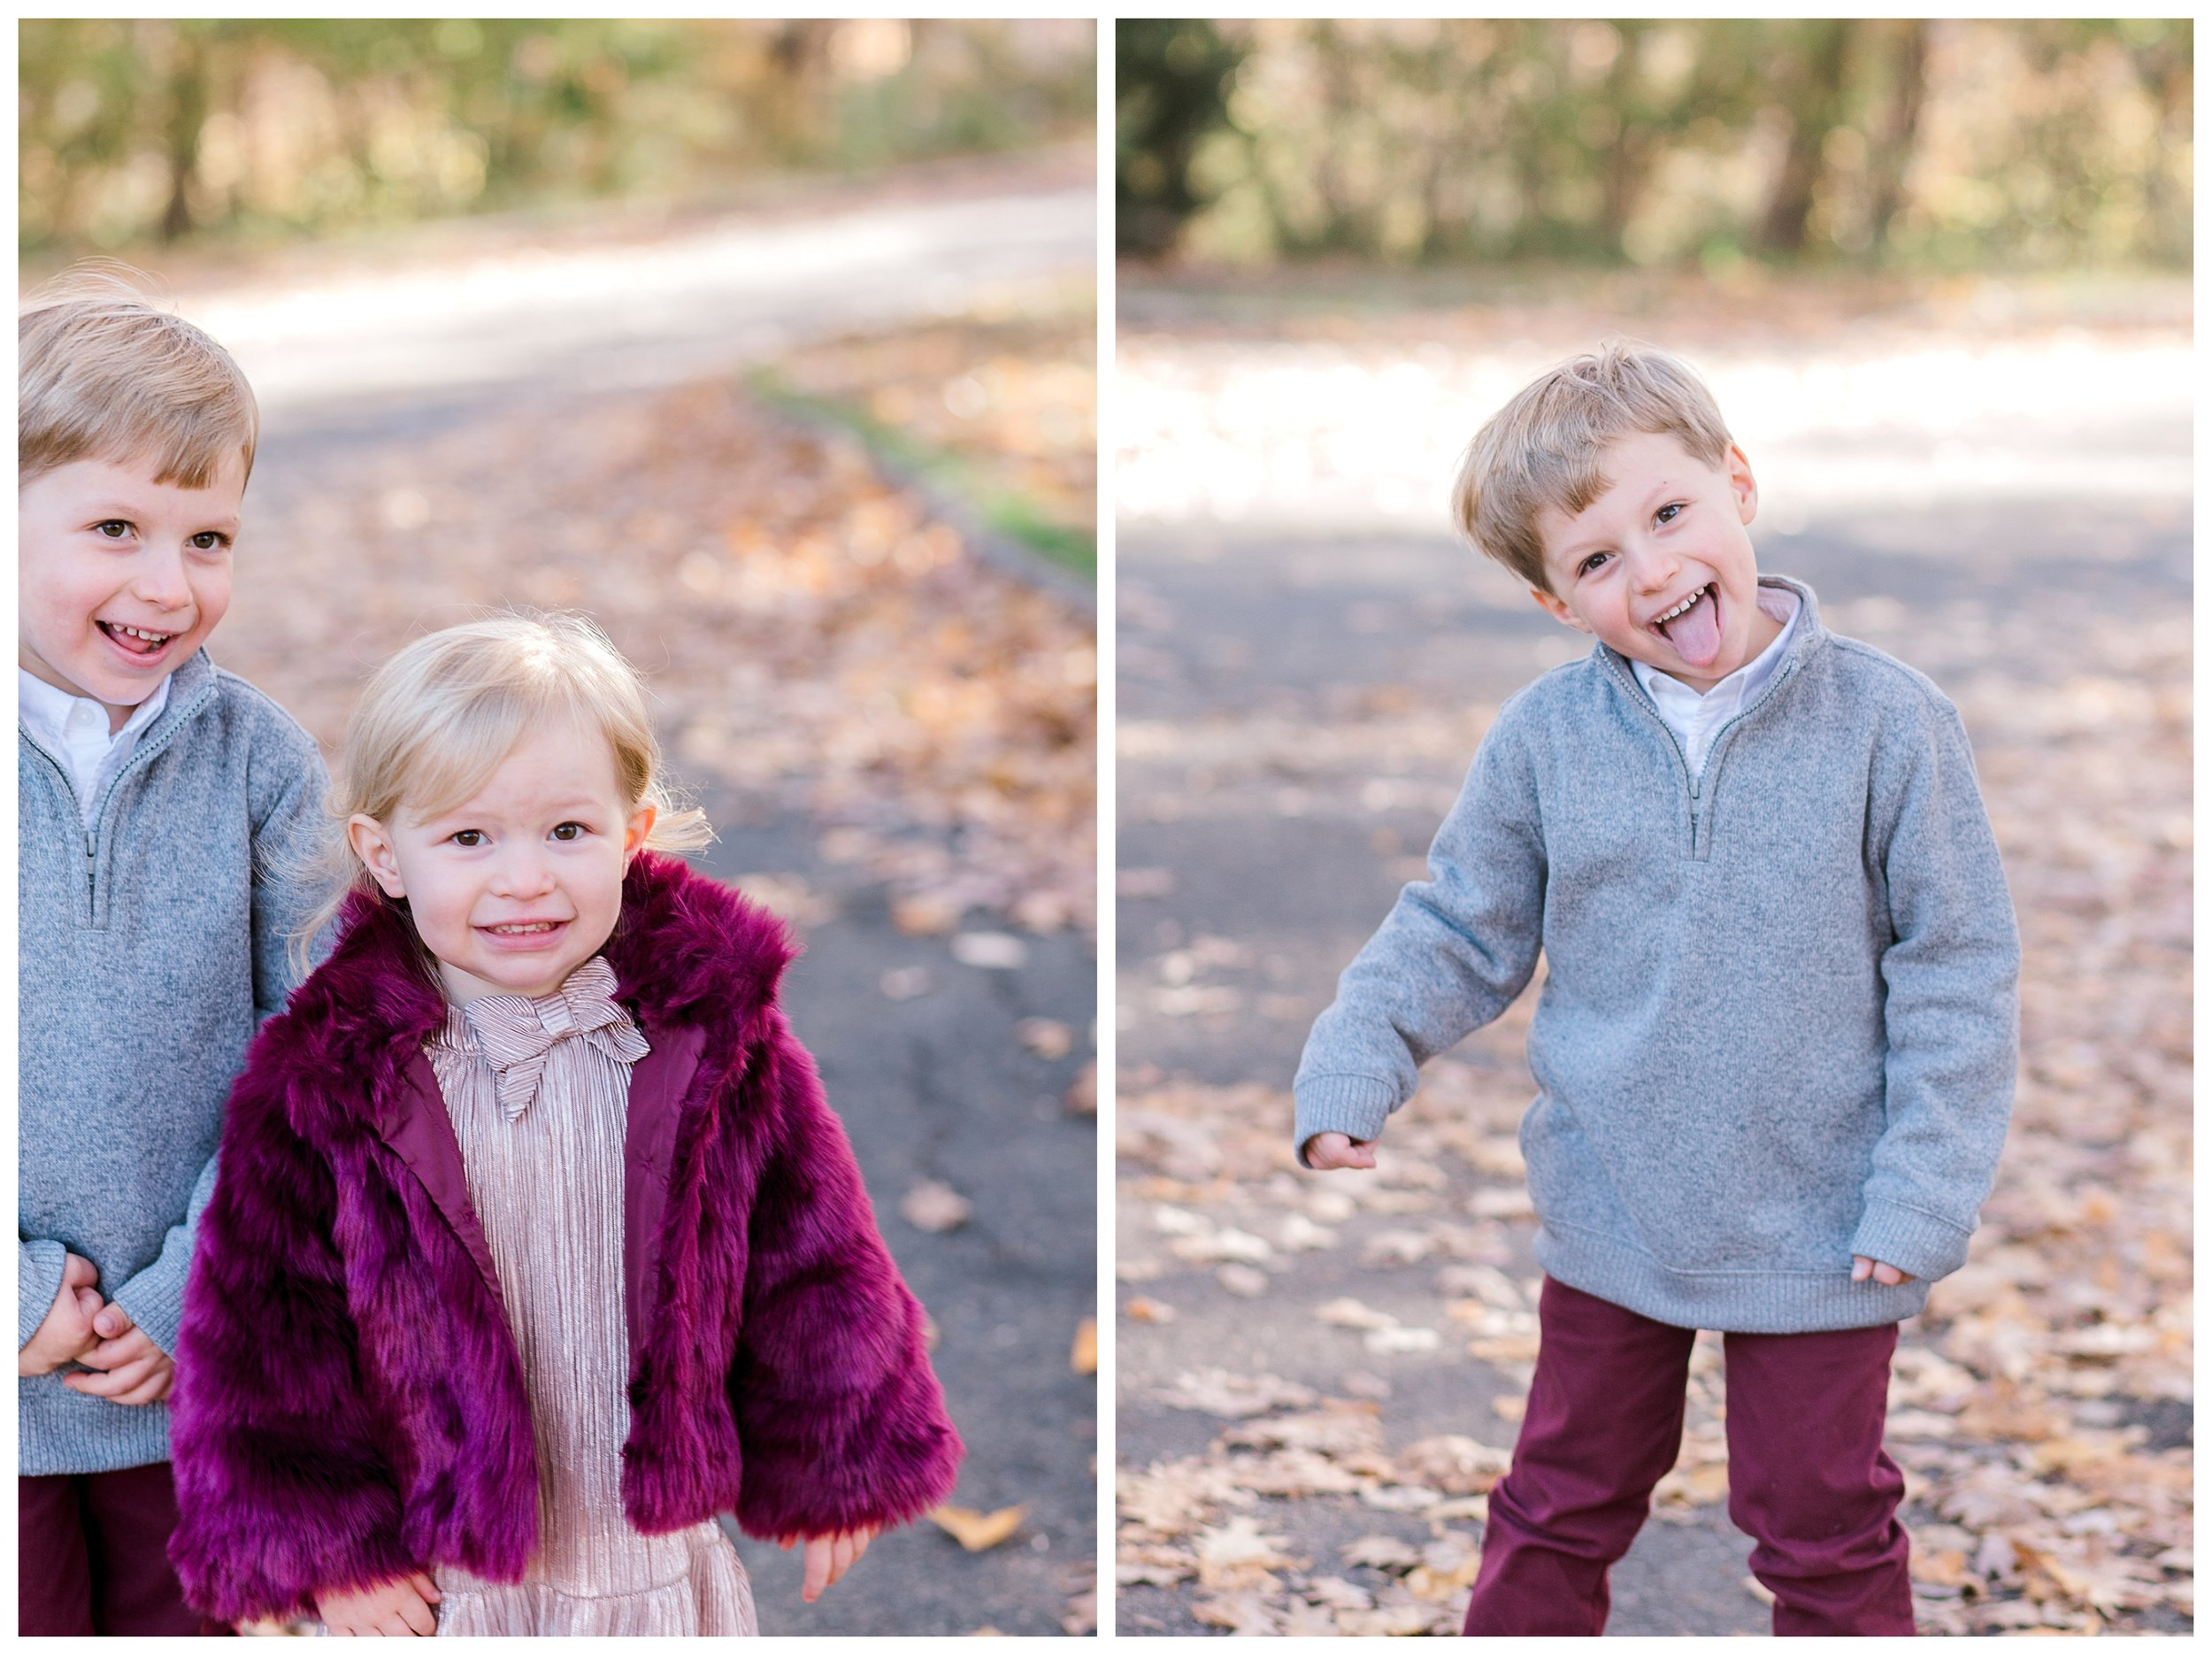 wellesley_fall_family_photographer_erica_pezente_photo (8).jpg